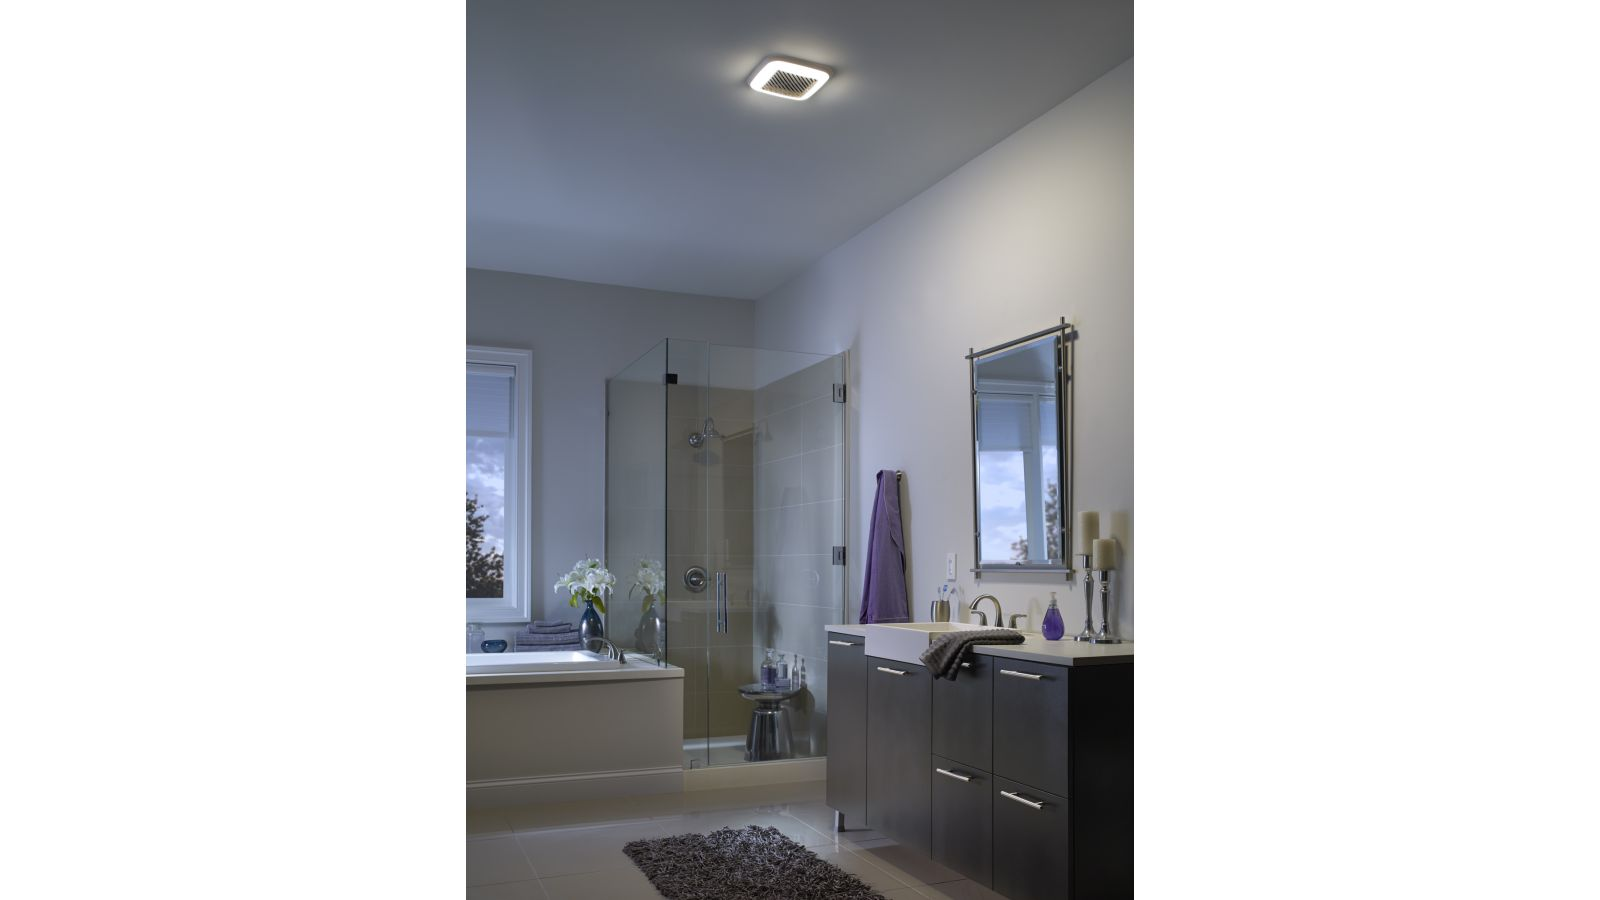 Broan Fan with Soft Surround LED Lighting